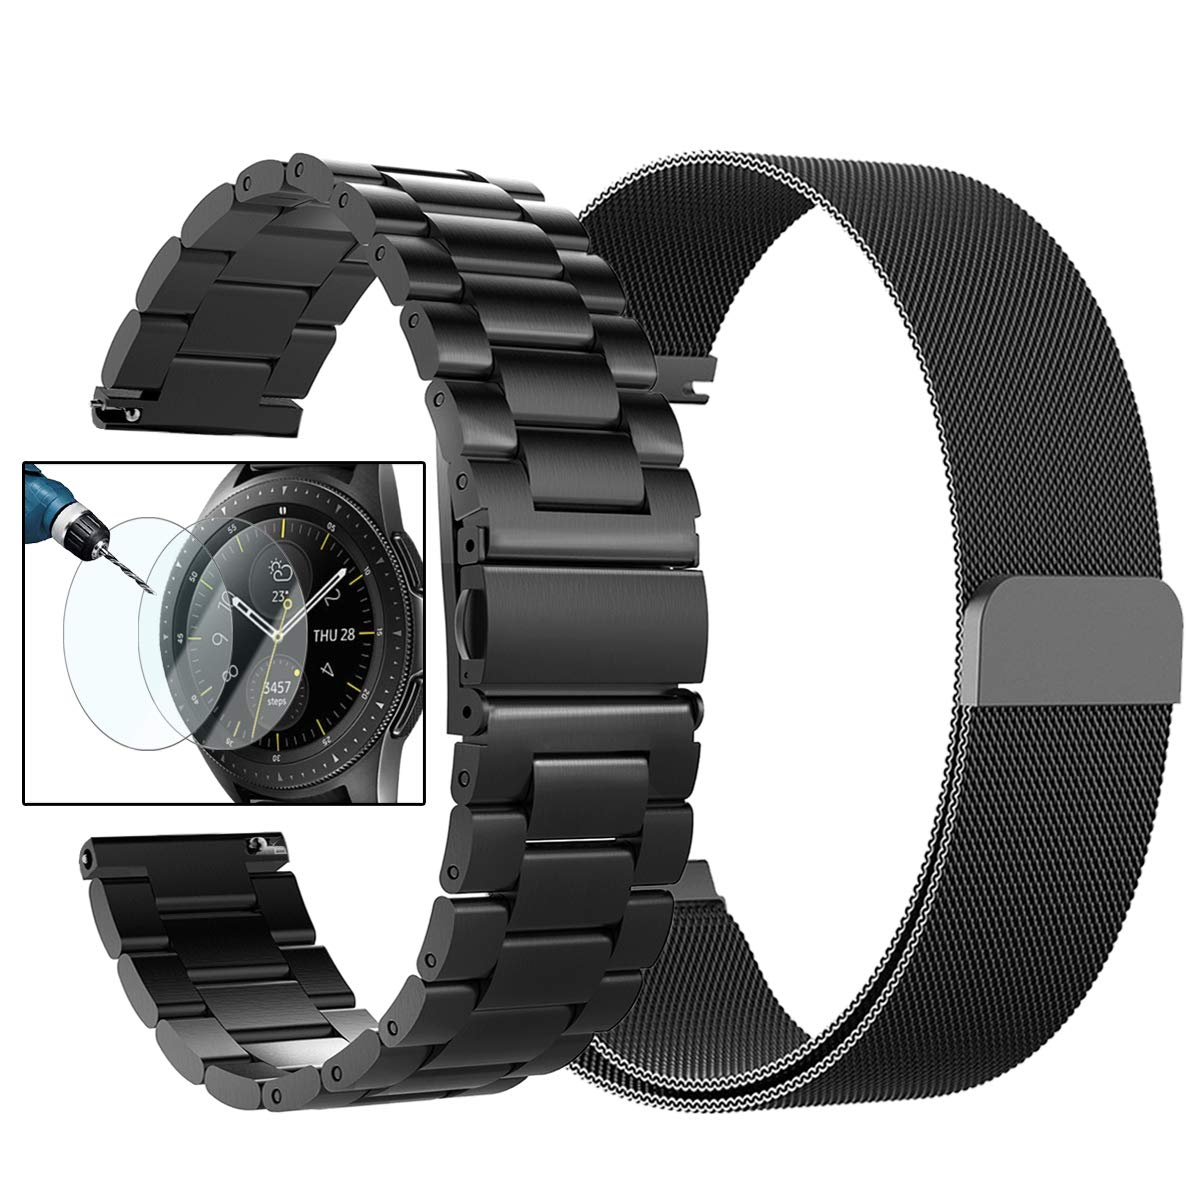 Valkit for Galaxy Watch (46mm) Bands, 2-Pack 22mm Stainless Steel Band + Milanese Loop Mesh Strap Replacement Metal Band Brecelet Sets, Compatible Samsung Galaxy Watch 46mm SM-R800 Smartwatch, Black